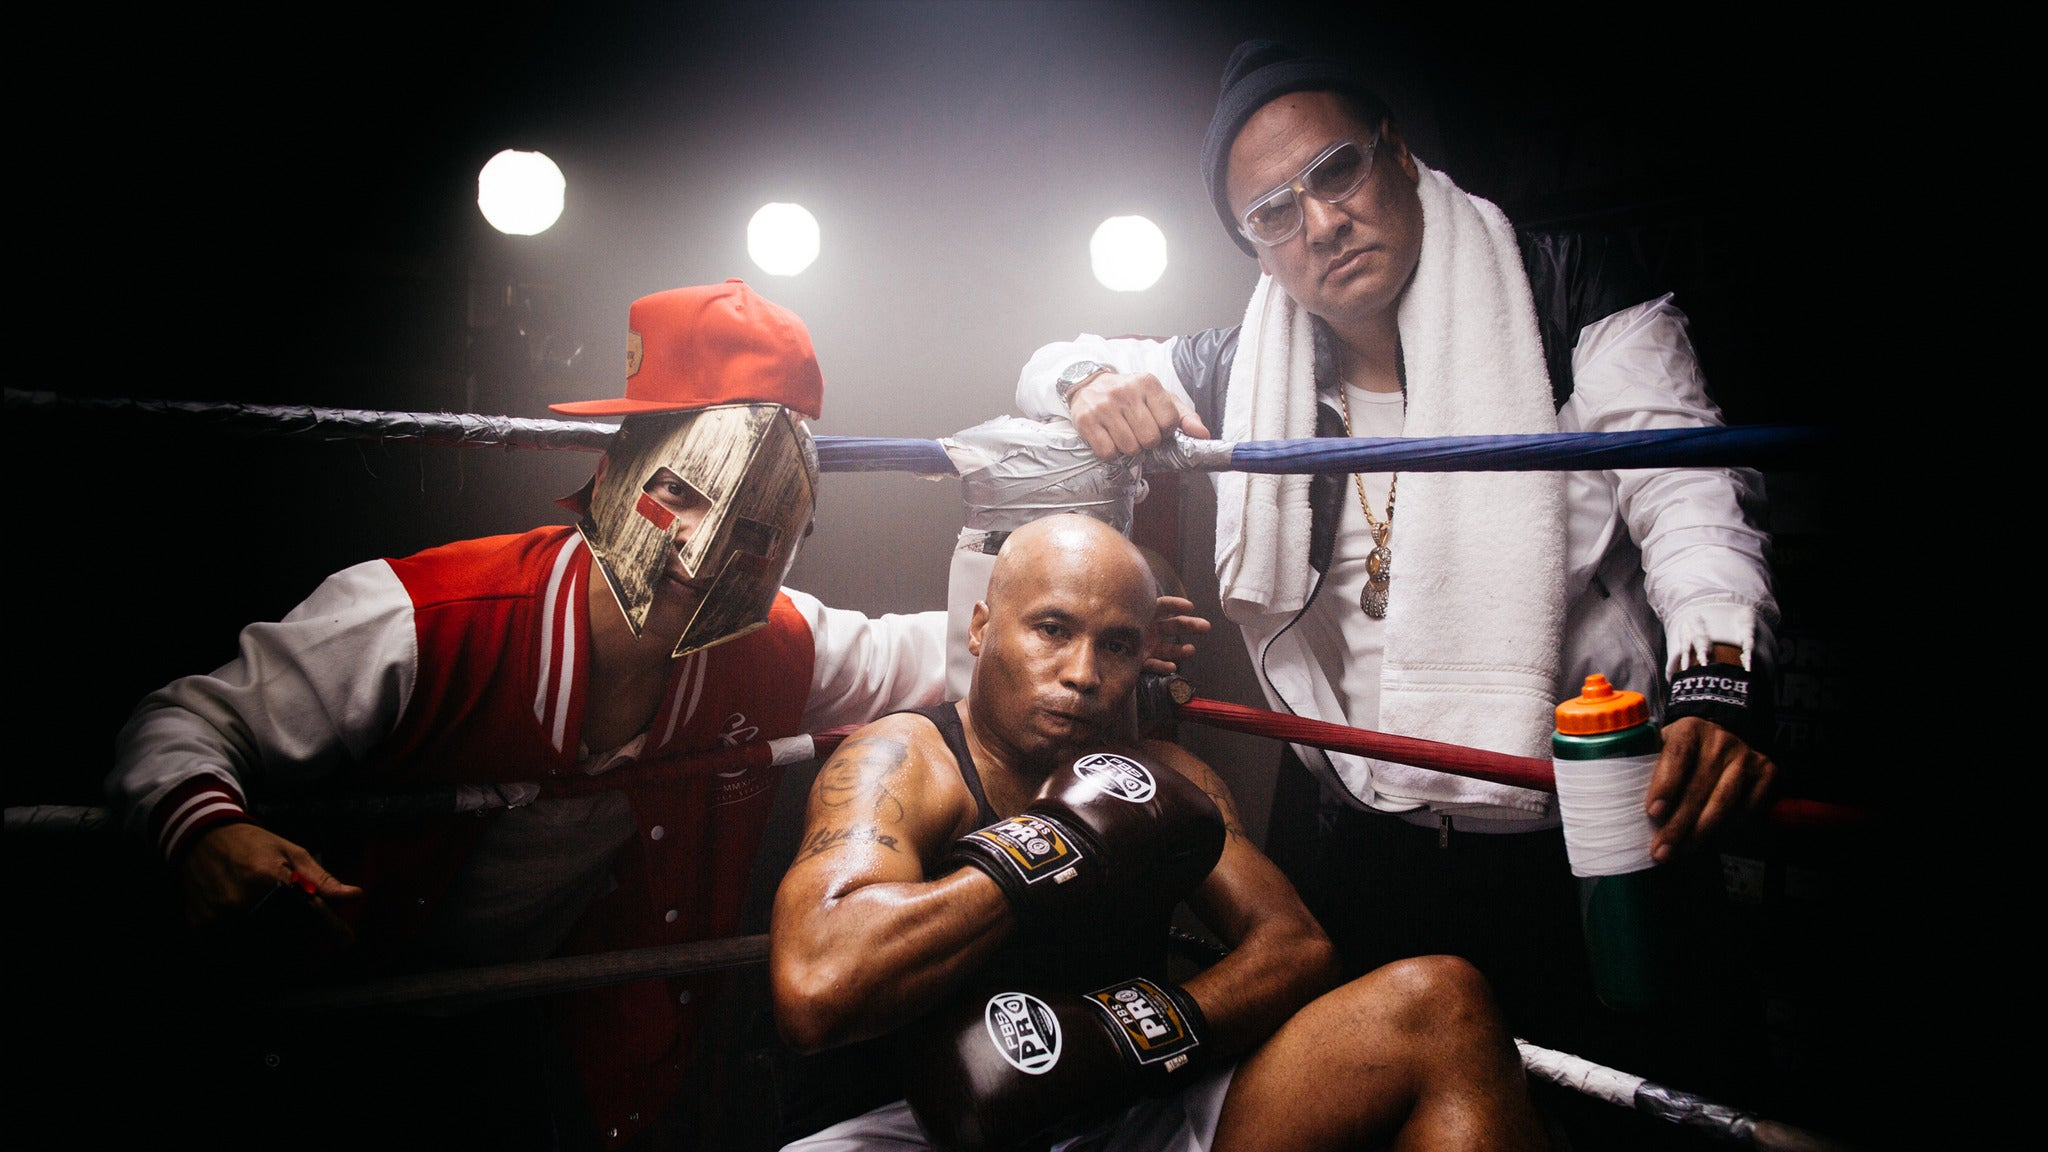 Dr. Octagon at The Belasco Theater - Los Angeles, CA 90015